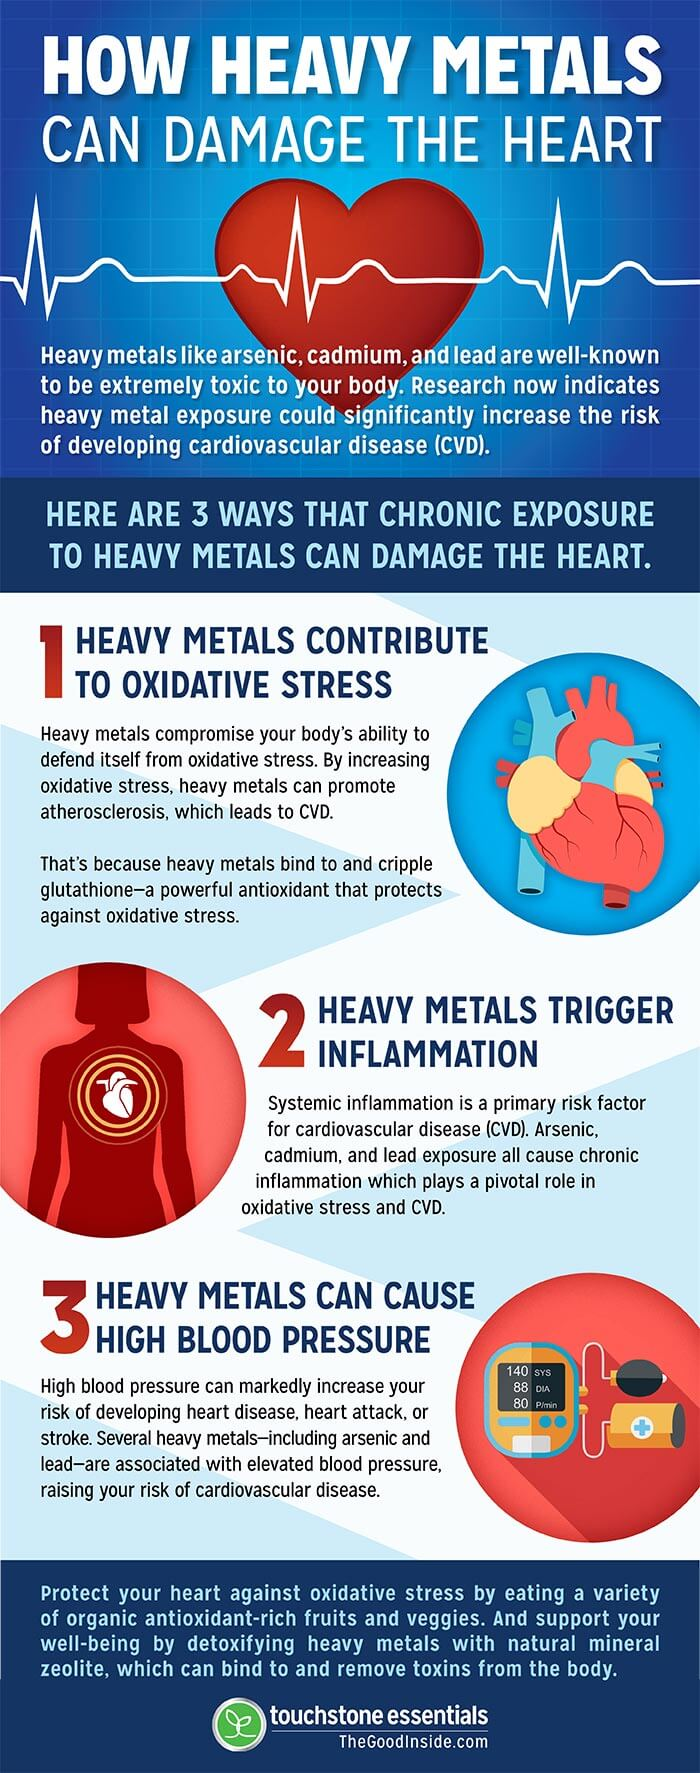 How Heavy Metals Can Damage the Heart